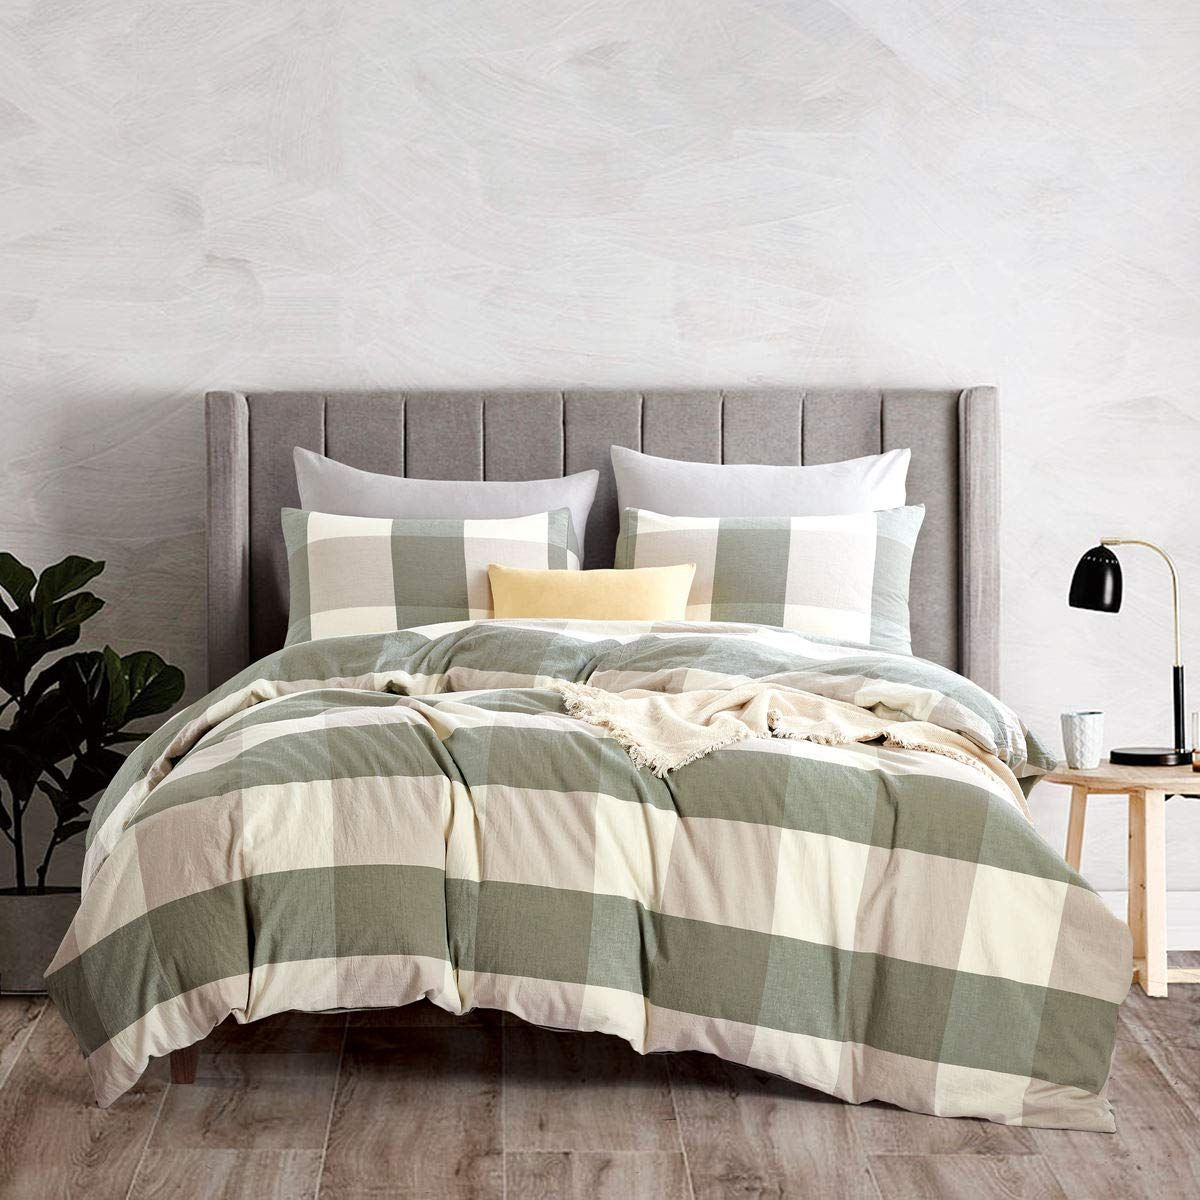 Farmhouse Duvet Covers Rustic Duvet Covers Farmhouse Goals In 2020 Farmhouse Bedding Sets Farmhouse Bedding Rustic Bedding Sets